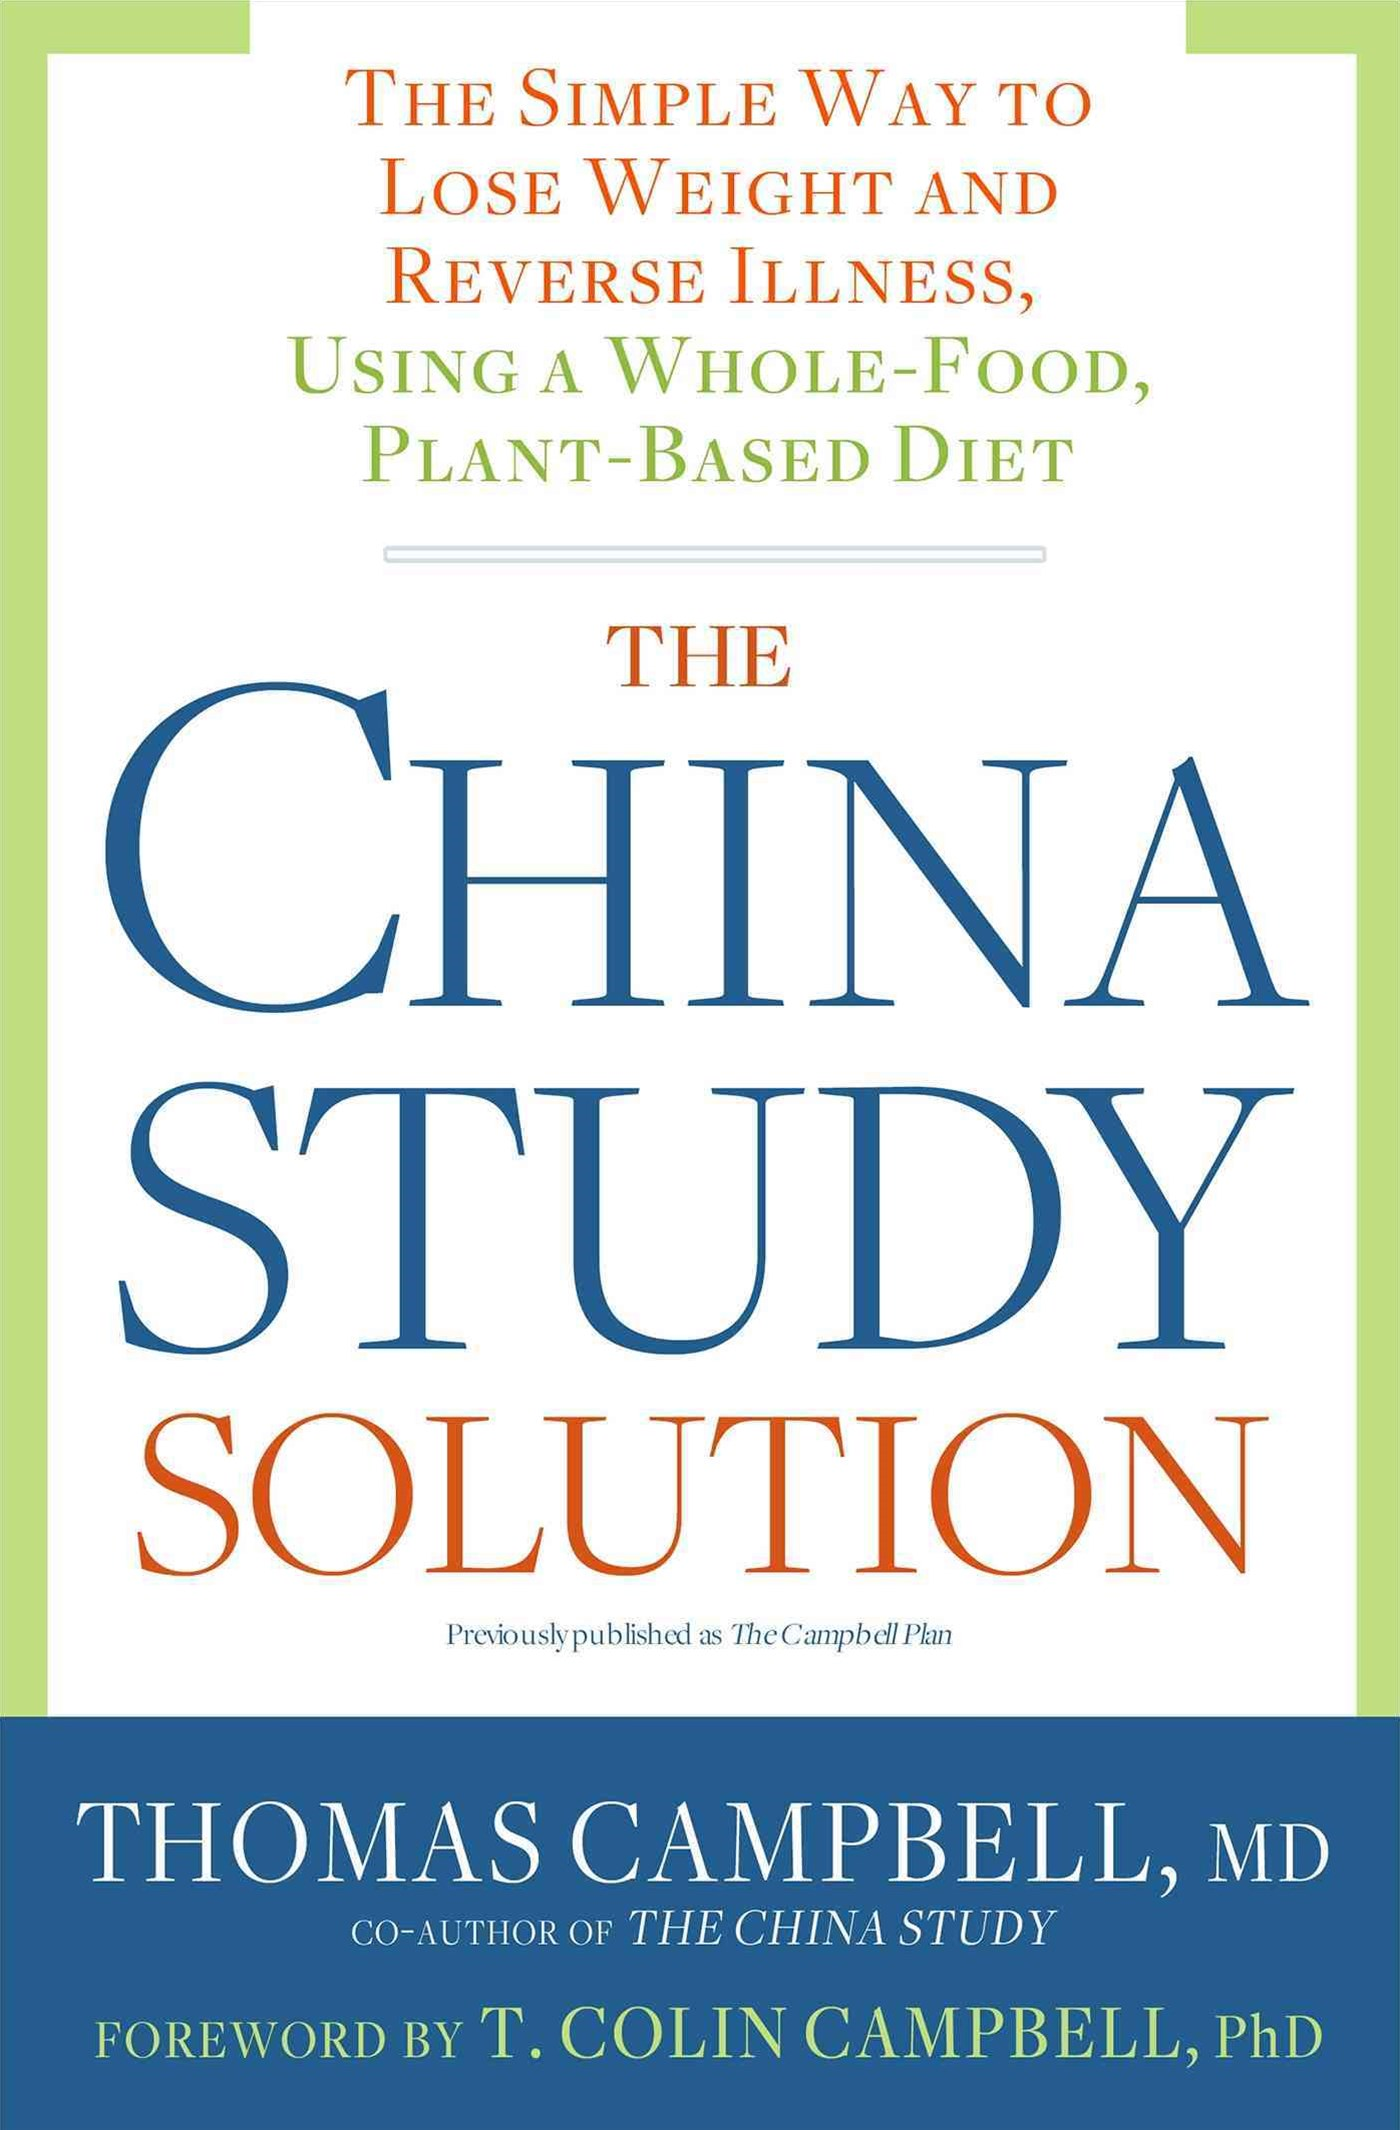 China Study Solution